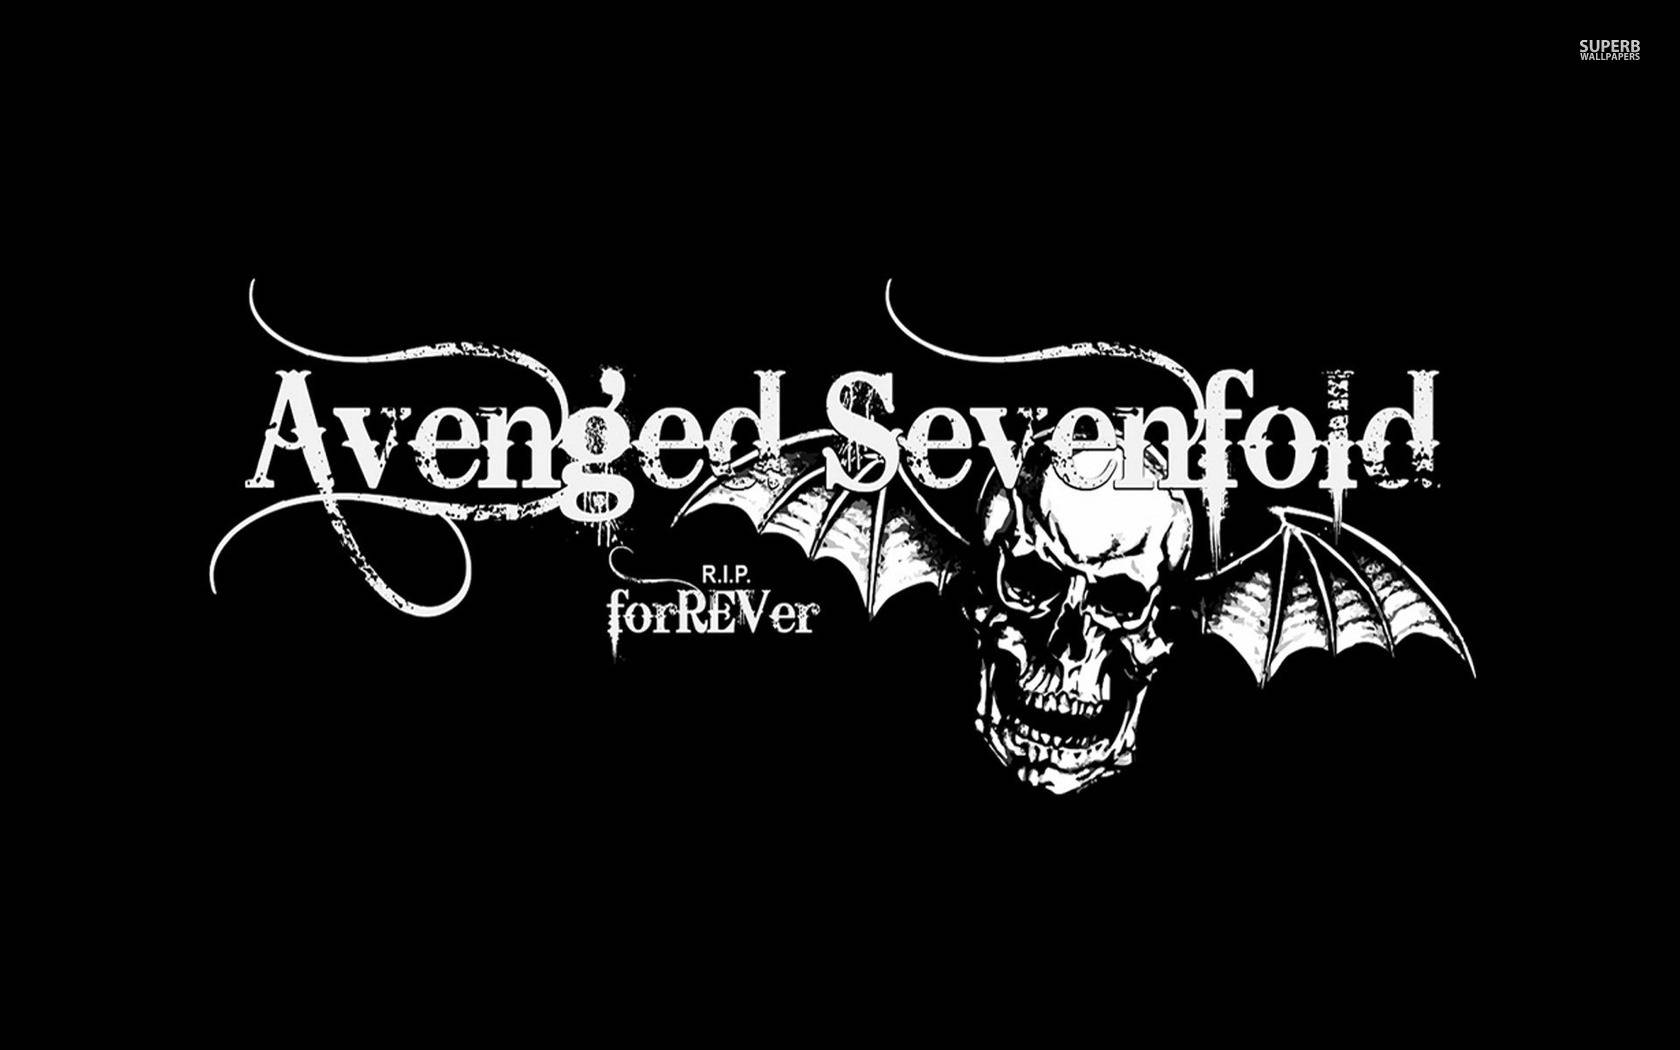 Avenged Sevenfold 2016 Wallpapers 1680x1050